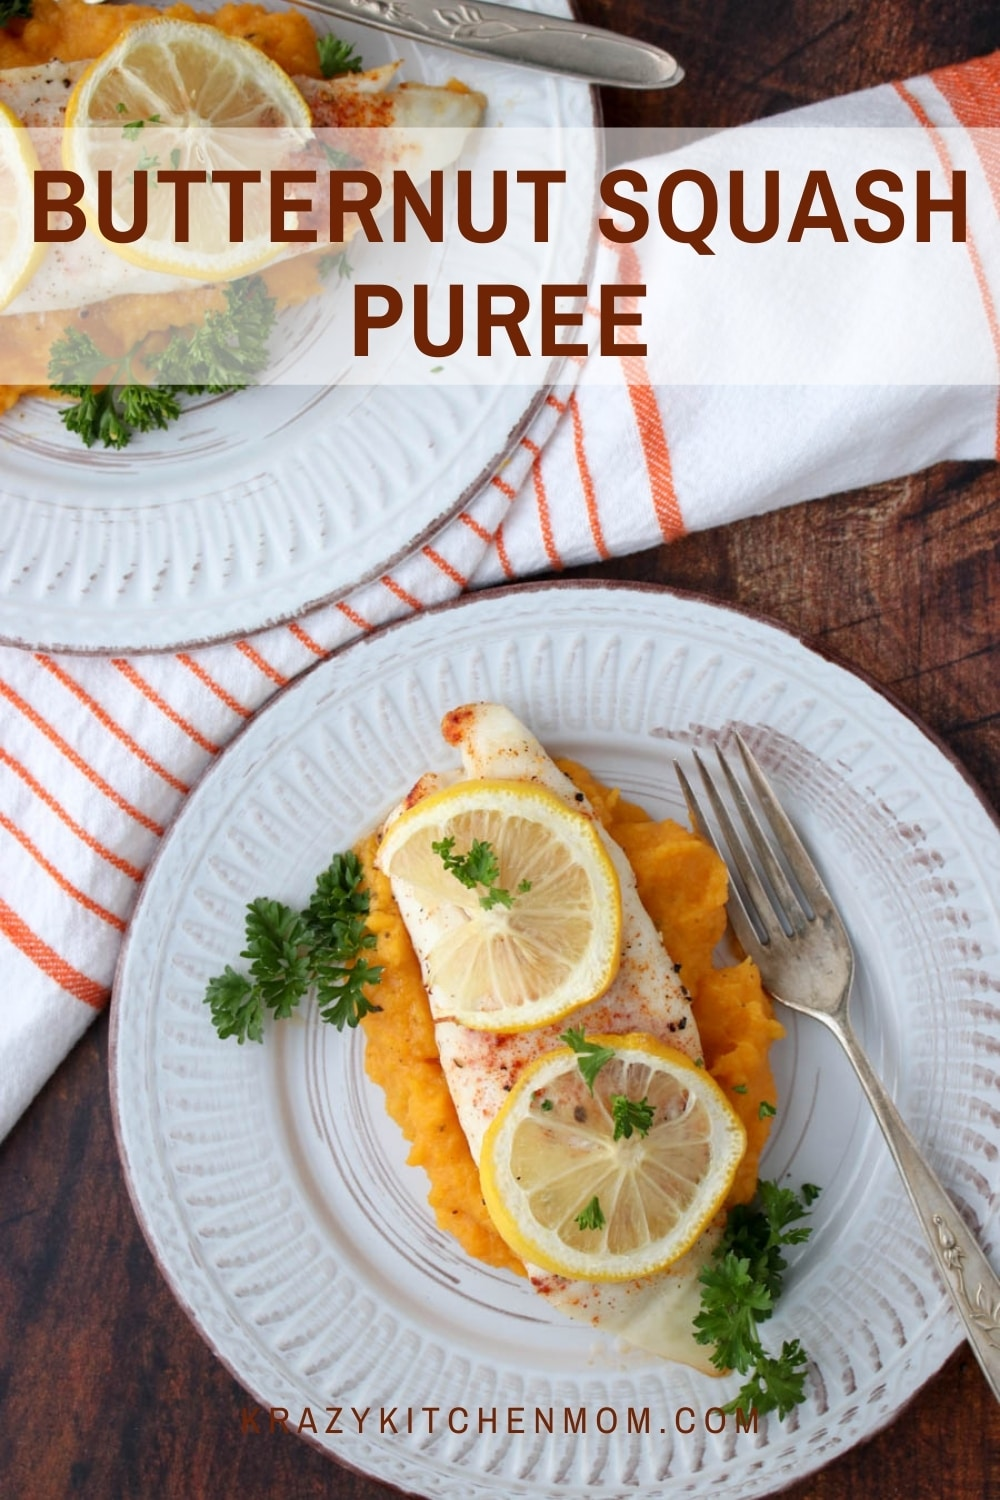 Four simple ingredients can take an everyday dish and turn it into an elegant restaurant-style dish with my butternut squash puree recipe.  via @krazykitchenmom